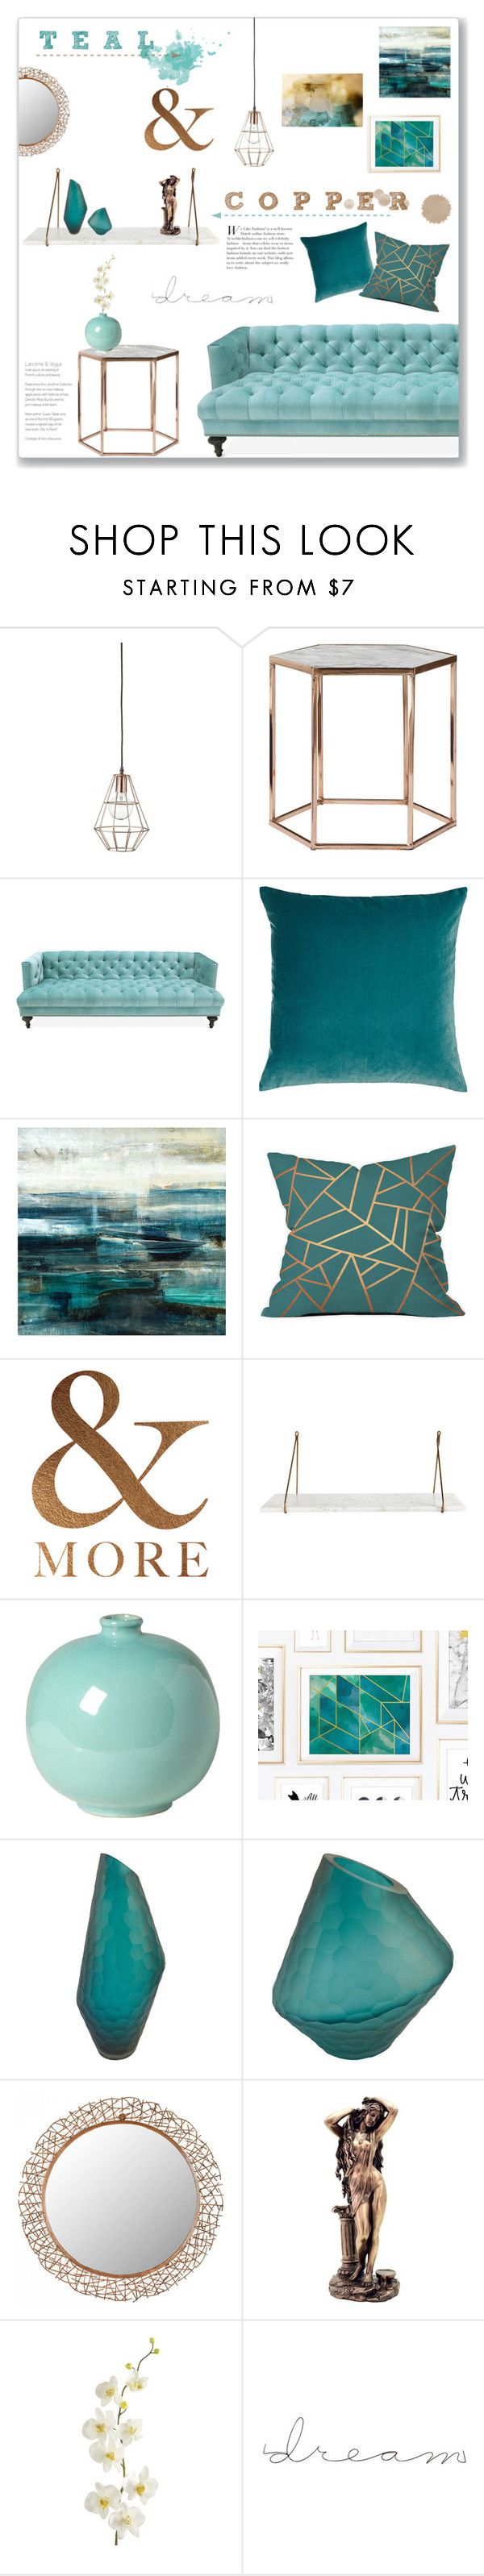 """Teal & Copper: Living Room"" by lauren-a-j-reid ❤ liked on Polyvore featuring interior, interiors, interior design, home, home decor, interior decorating, Bloomingville, Jonathan Adler, Legacy Home and Leftbank Art"